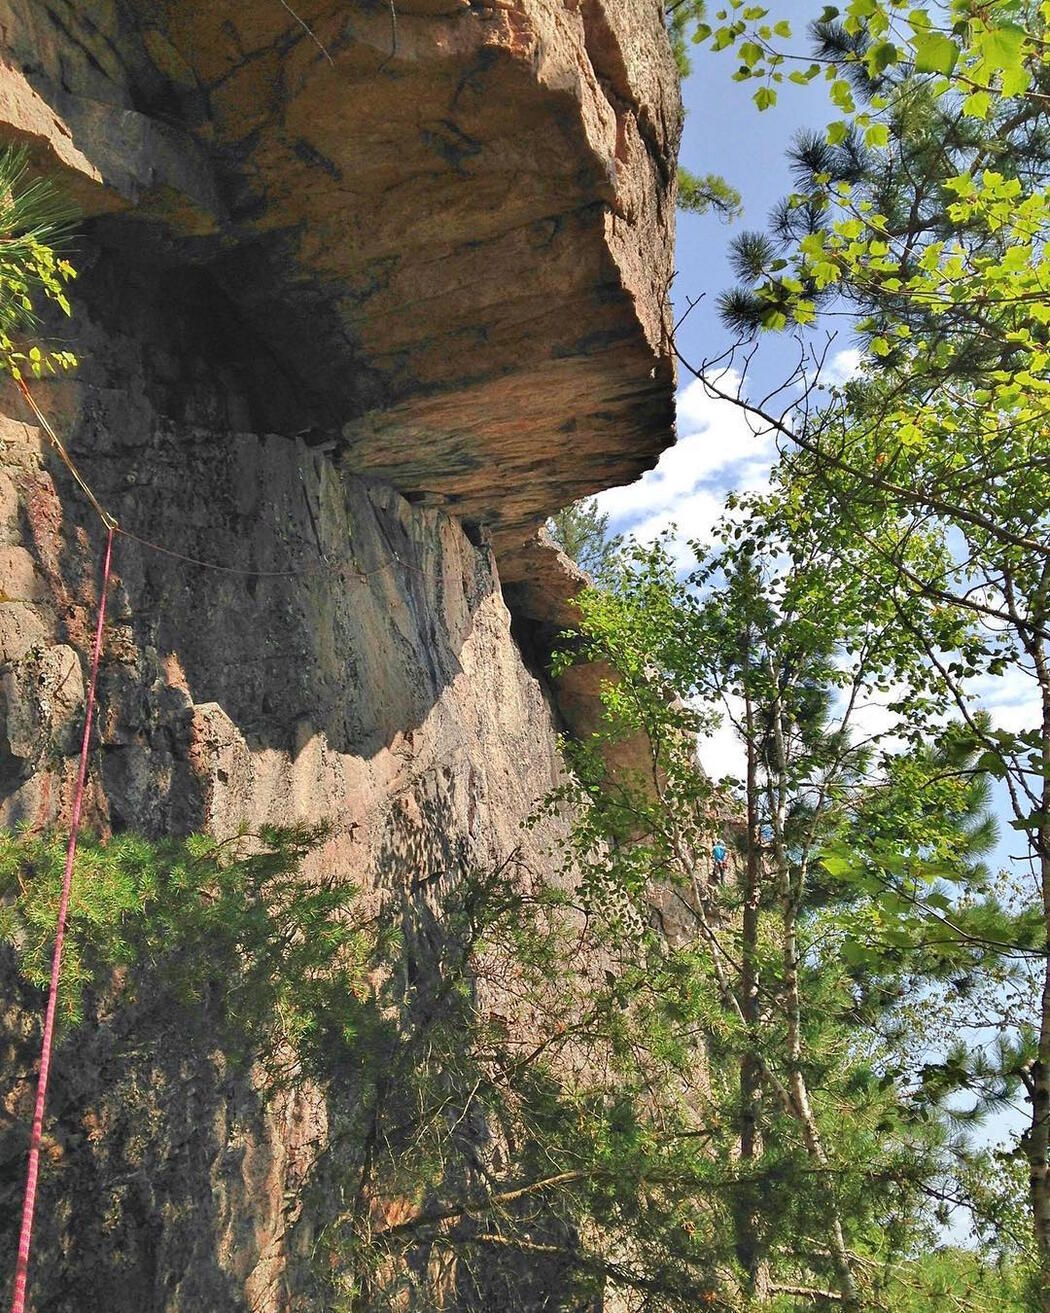 Looking up at a tall rock face.